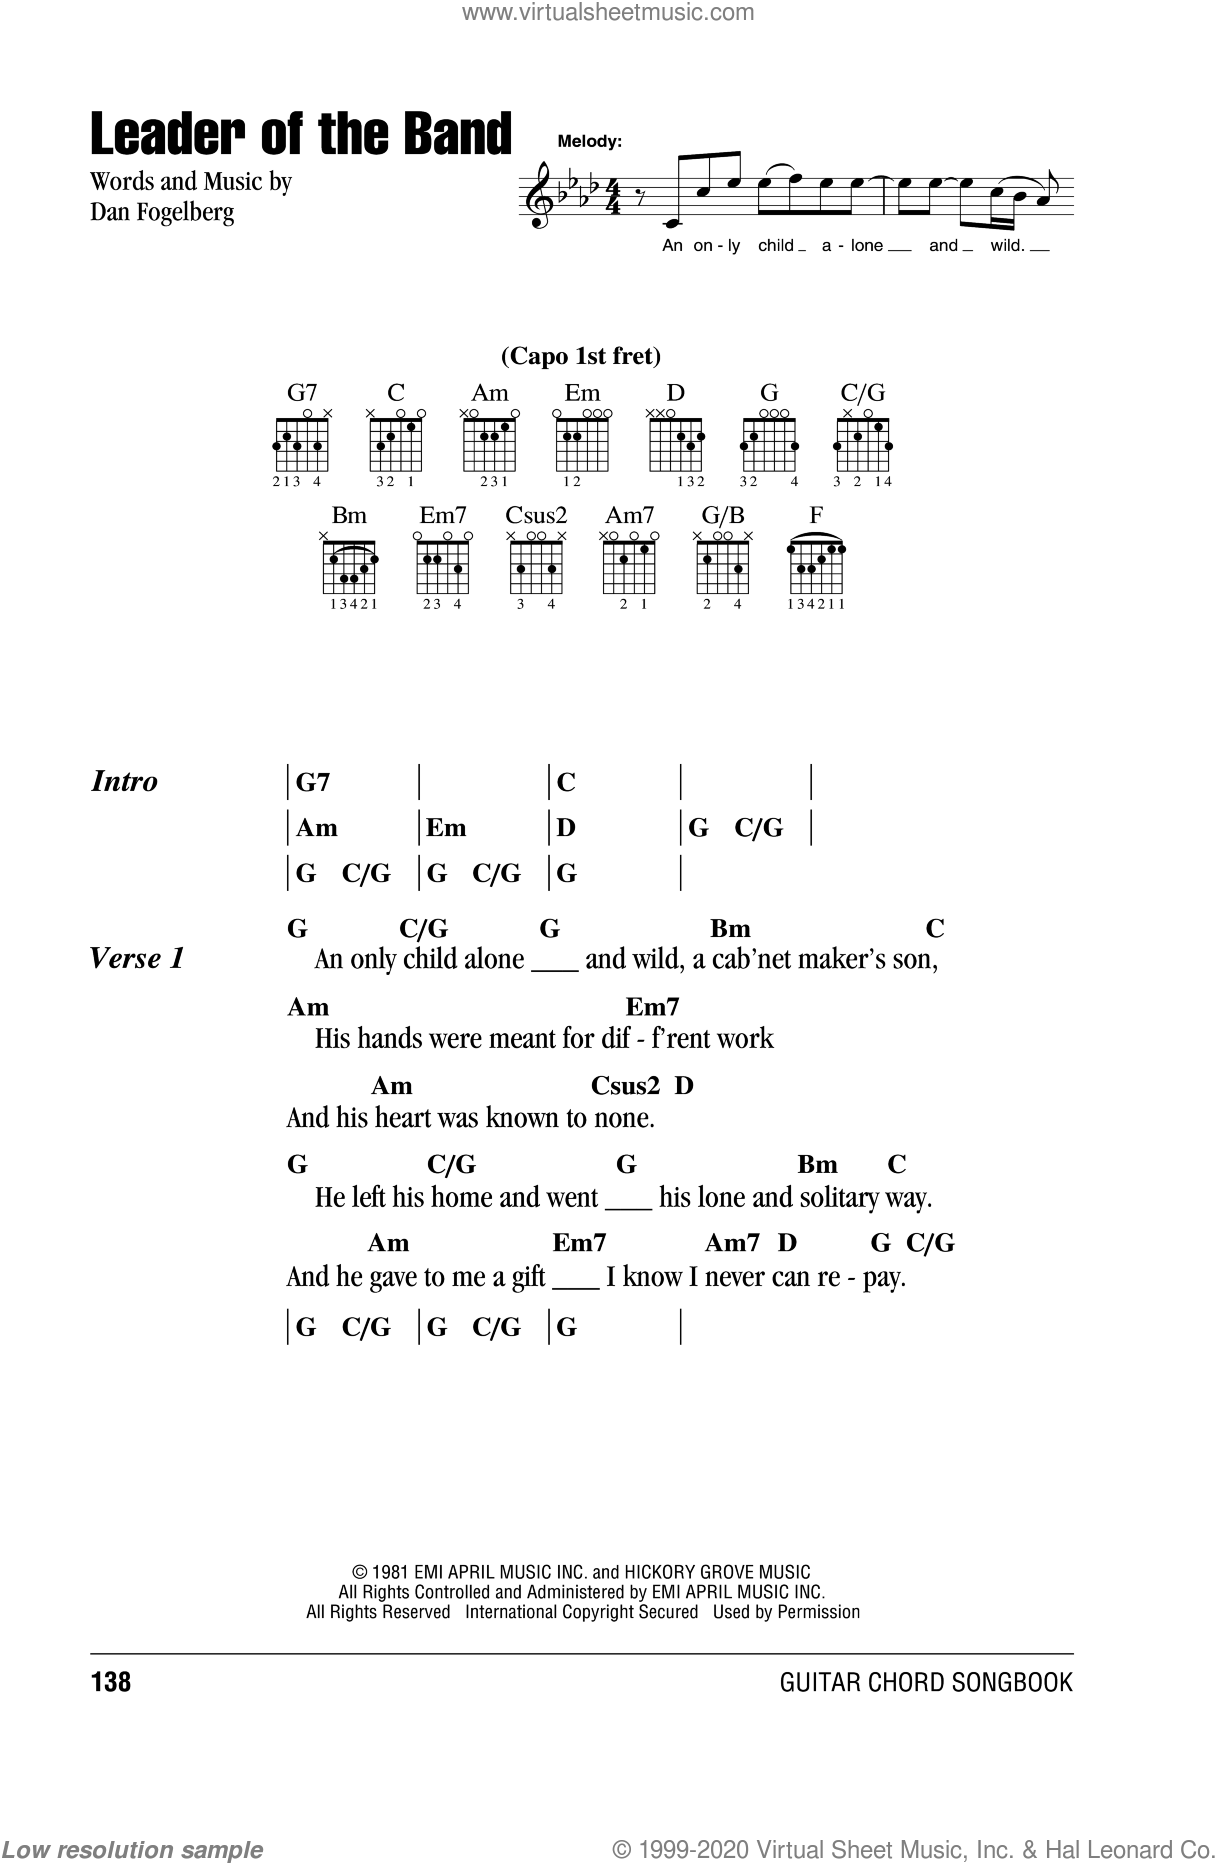 Leader Of The Band sheet music for guitar (chords) by Dan Fogelberg, intermediate skill level